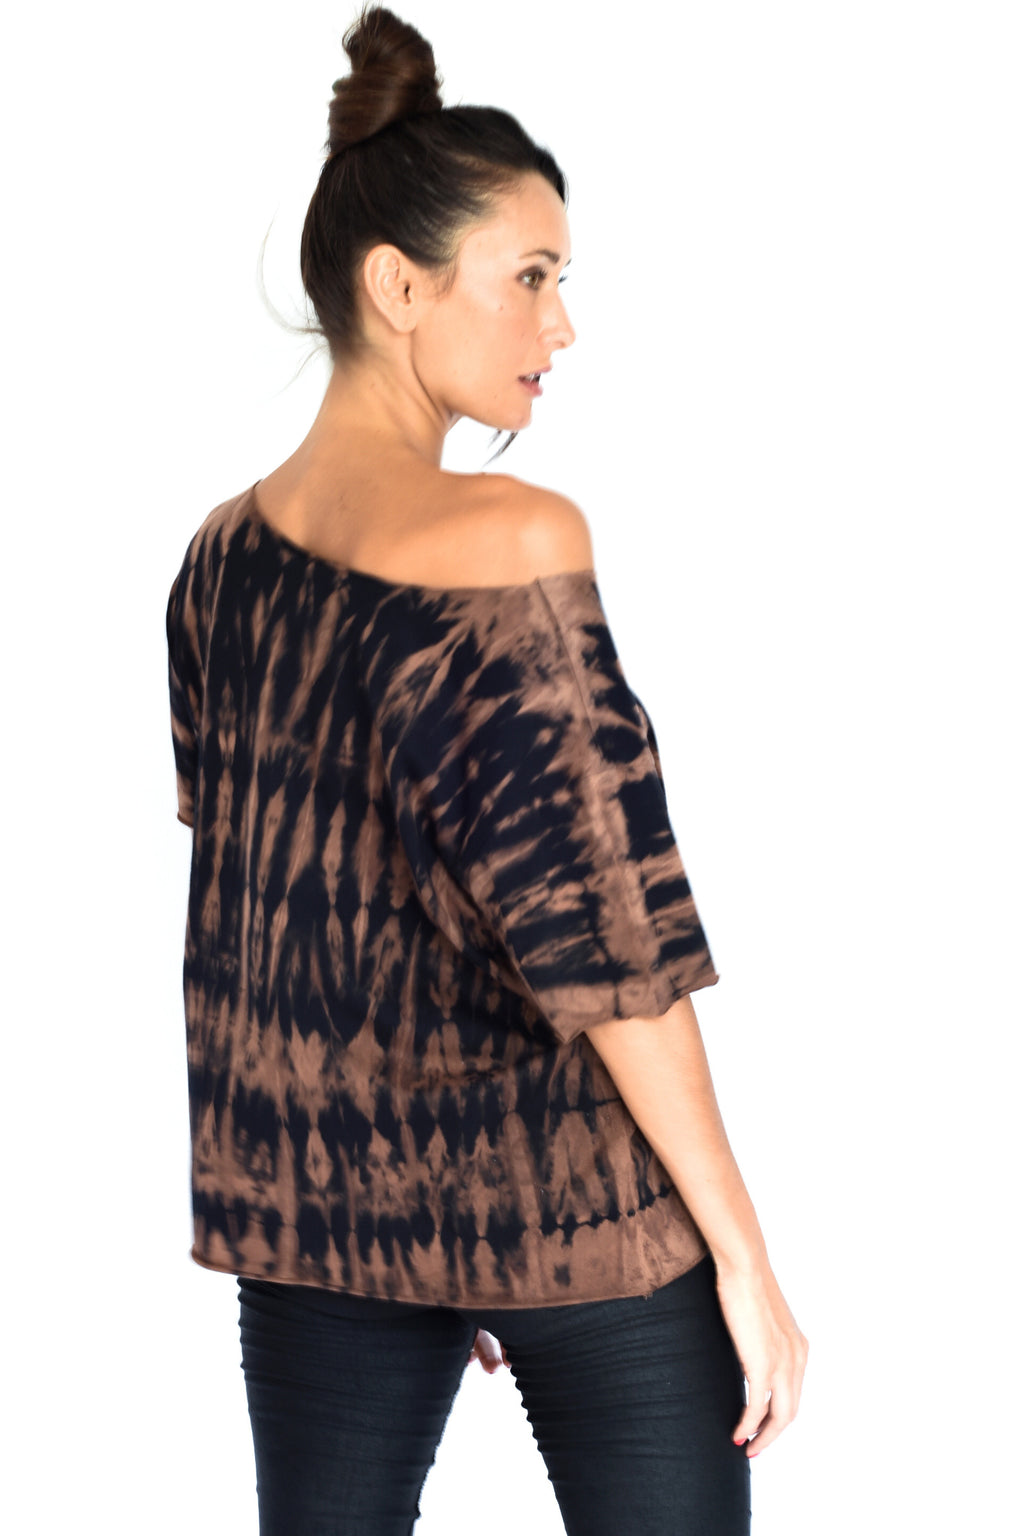 'MEGAN' TOP - BLACK AND BROWN TIE DYE